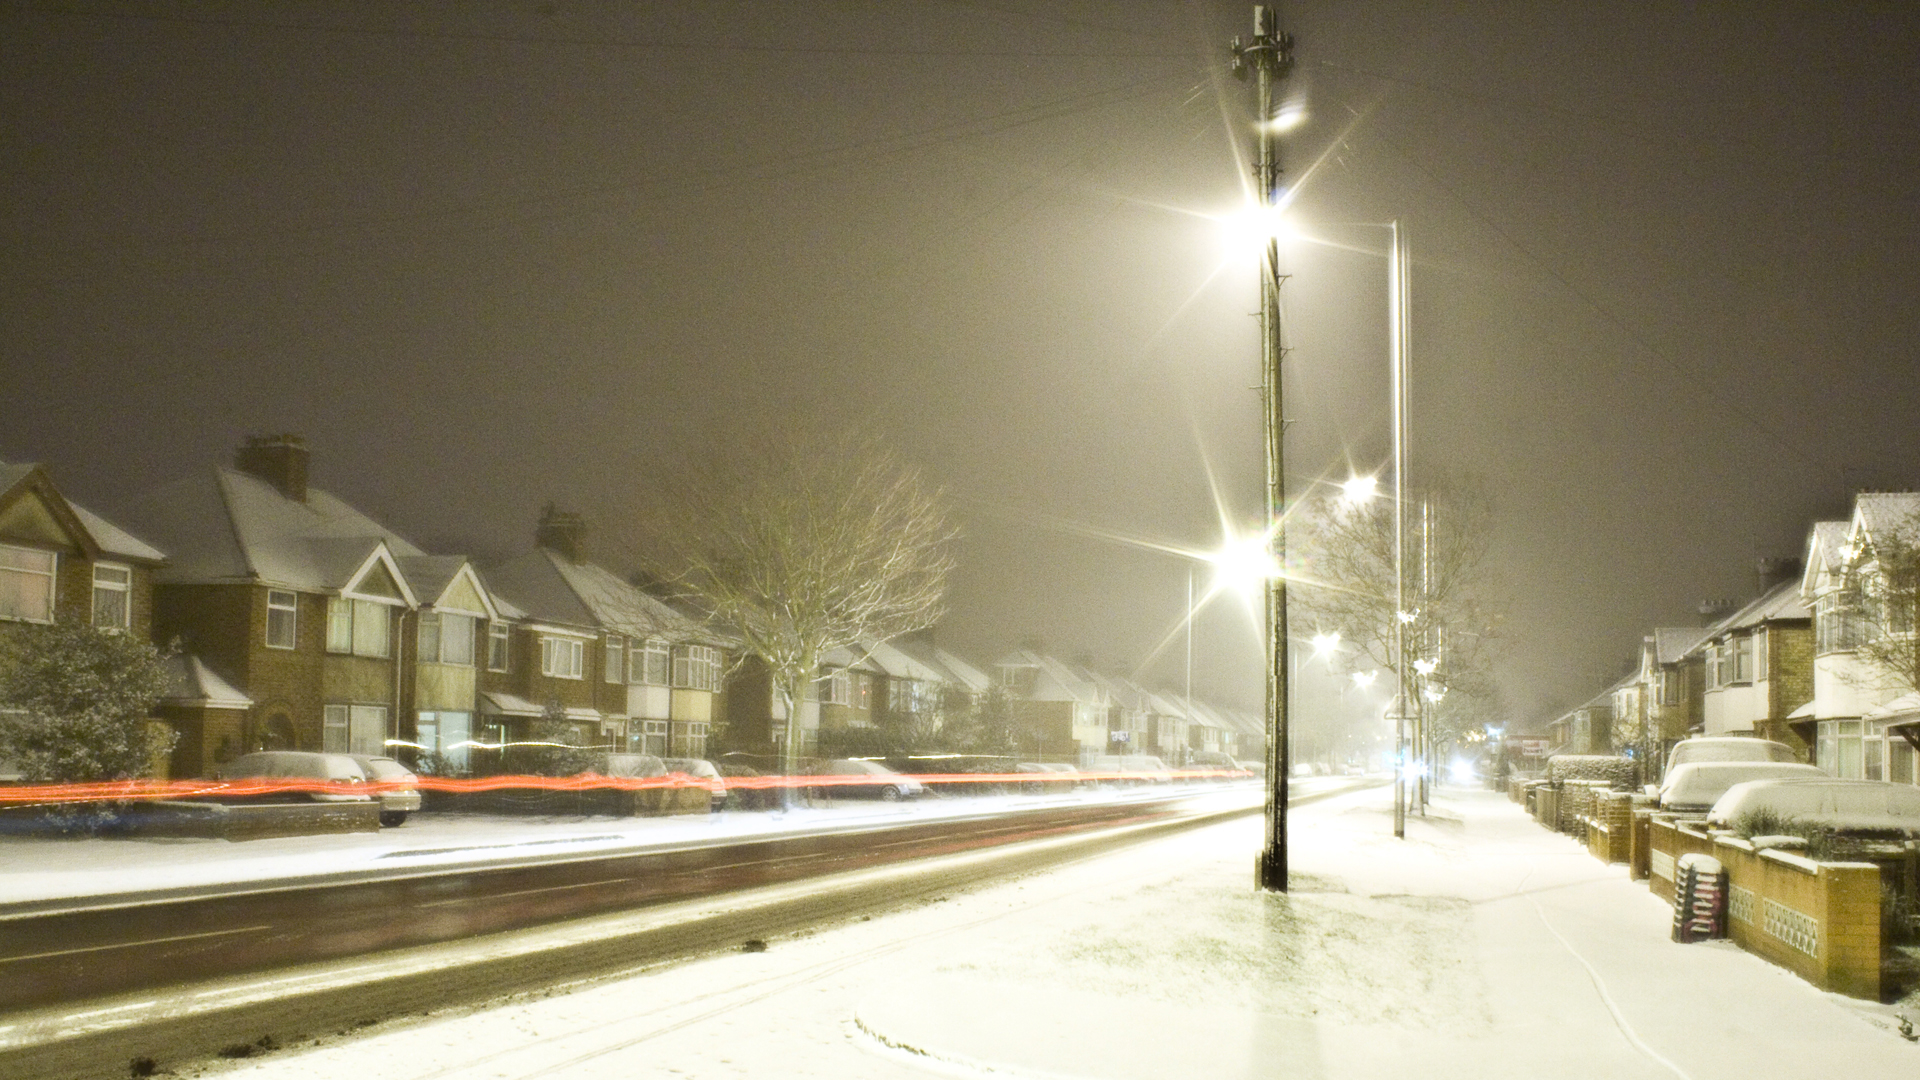 Traffic at night in snow